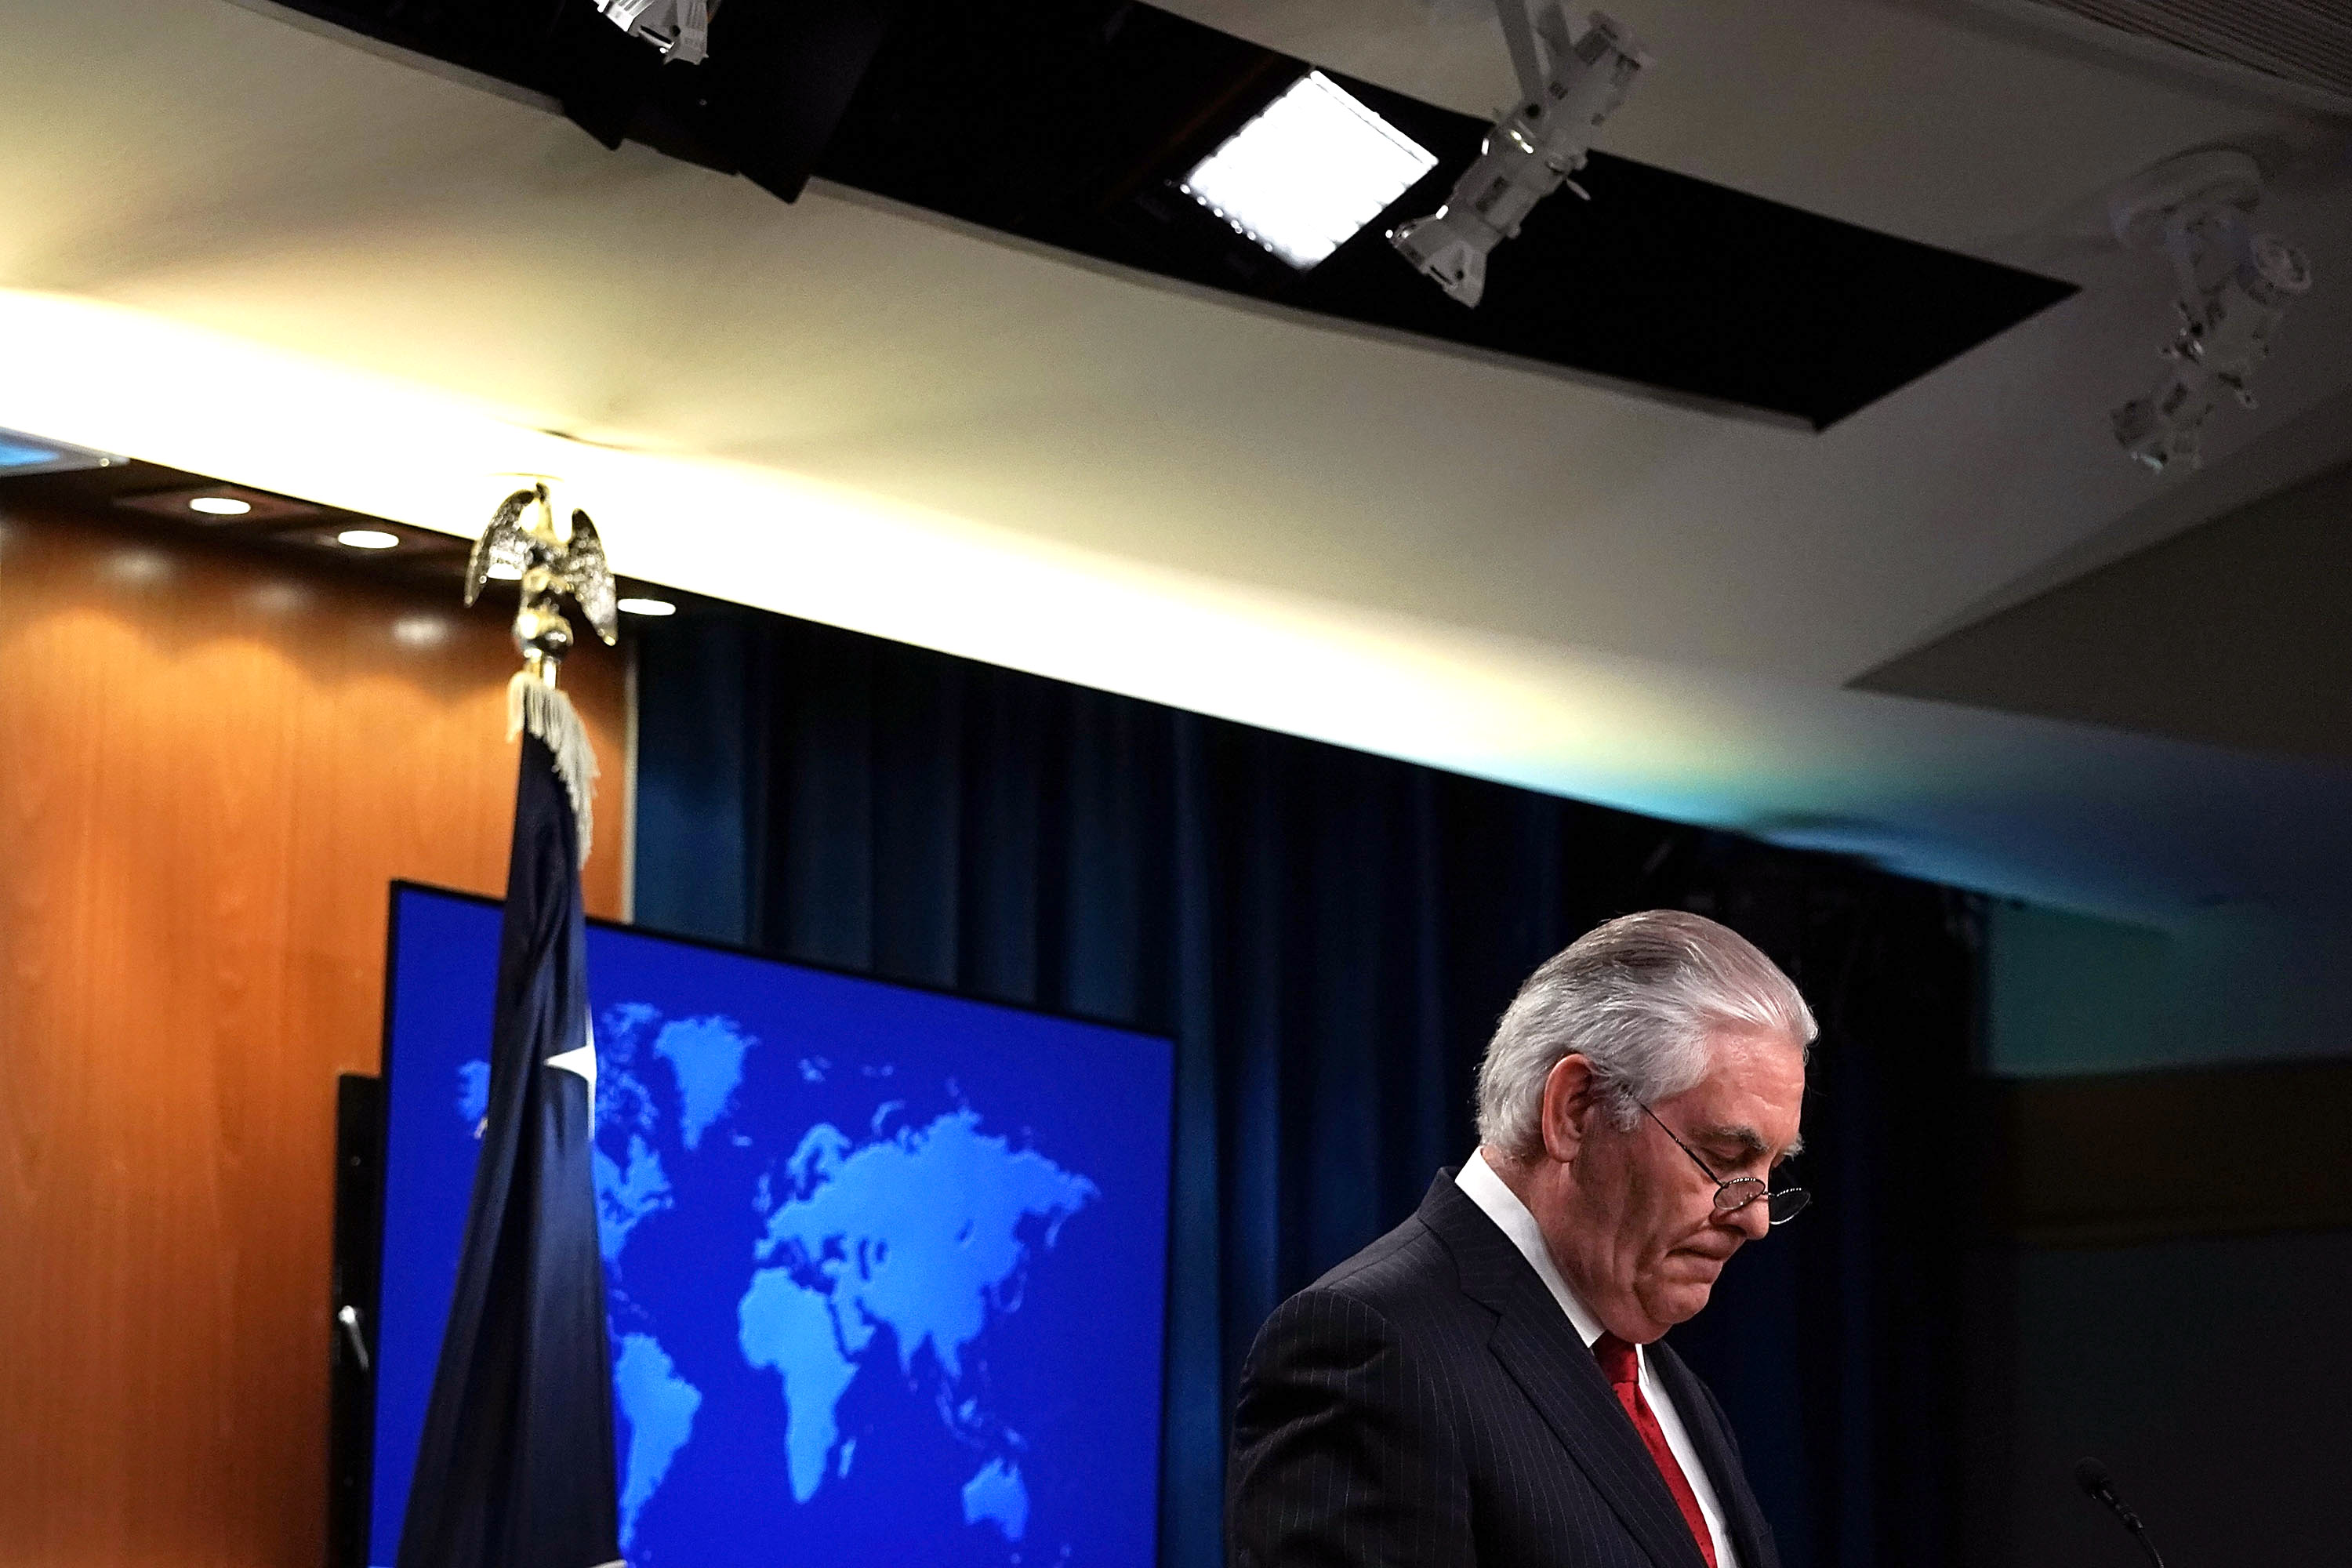 Outgoing U.S. Secretary of State Rex Tillerson pauses as he makes a statement on his departure from the State Department March 13, 2018 at the State Department in Washington, DC.